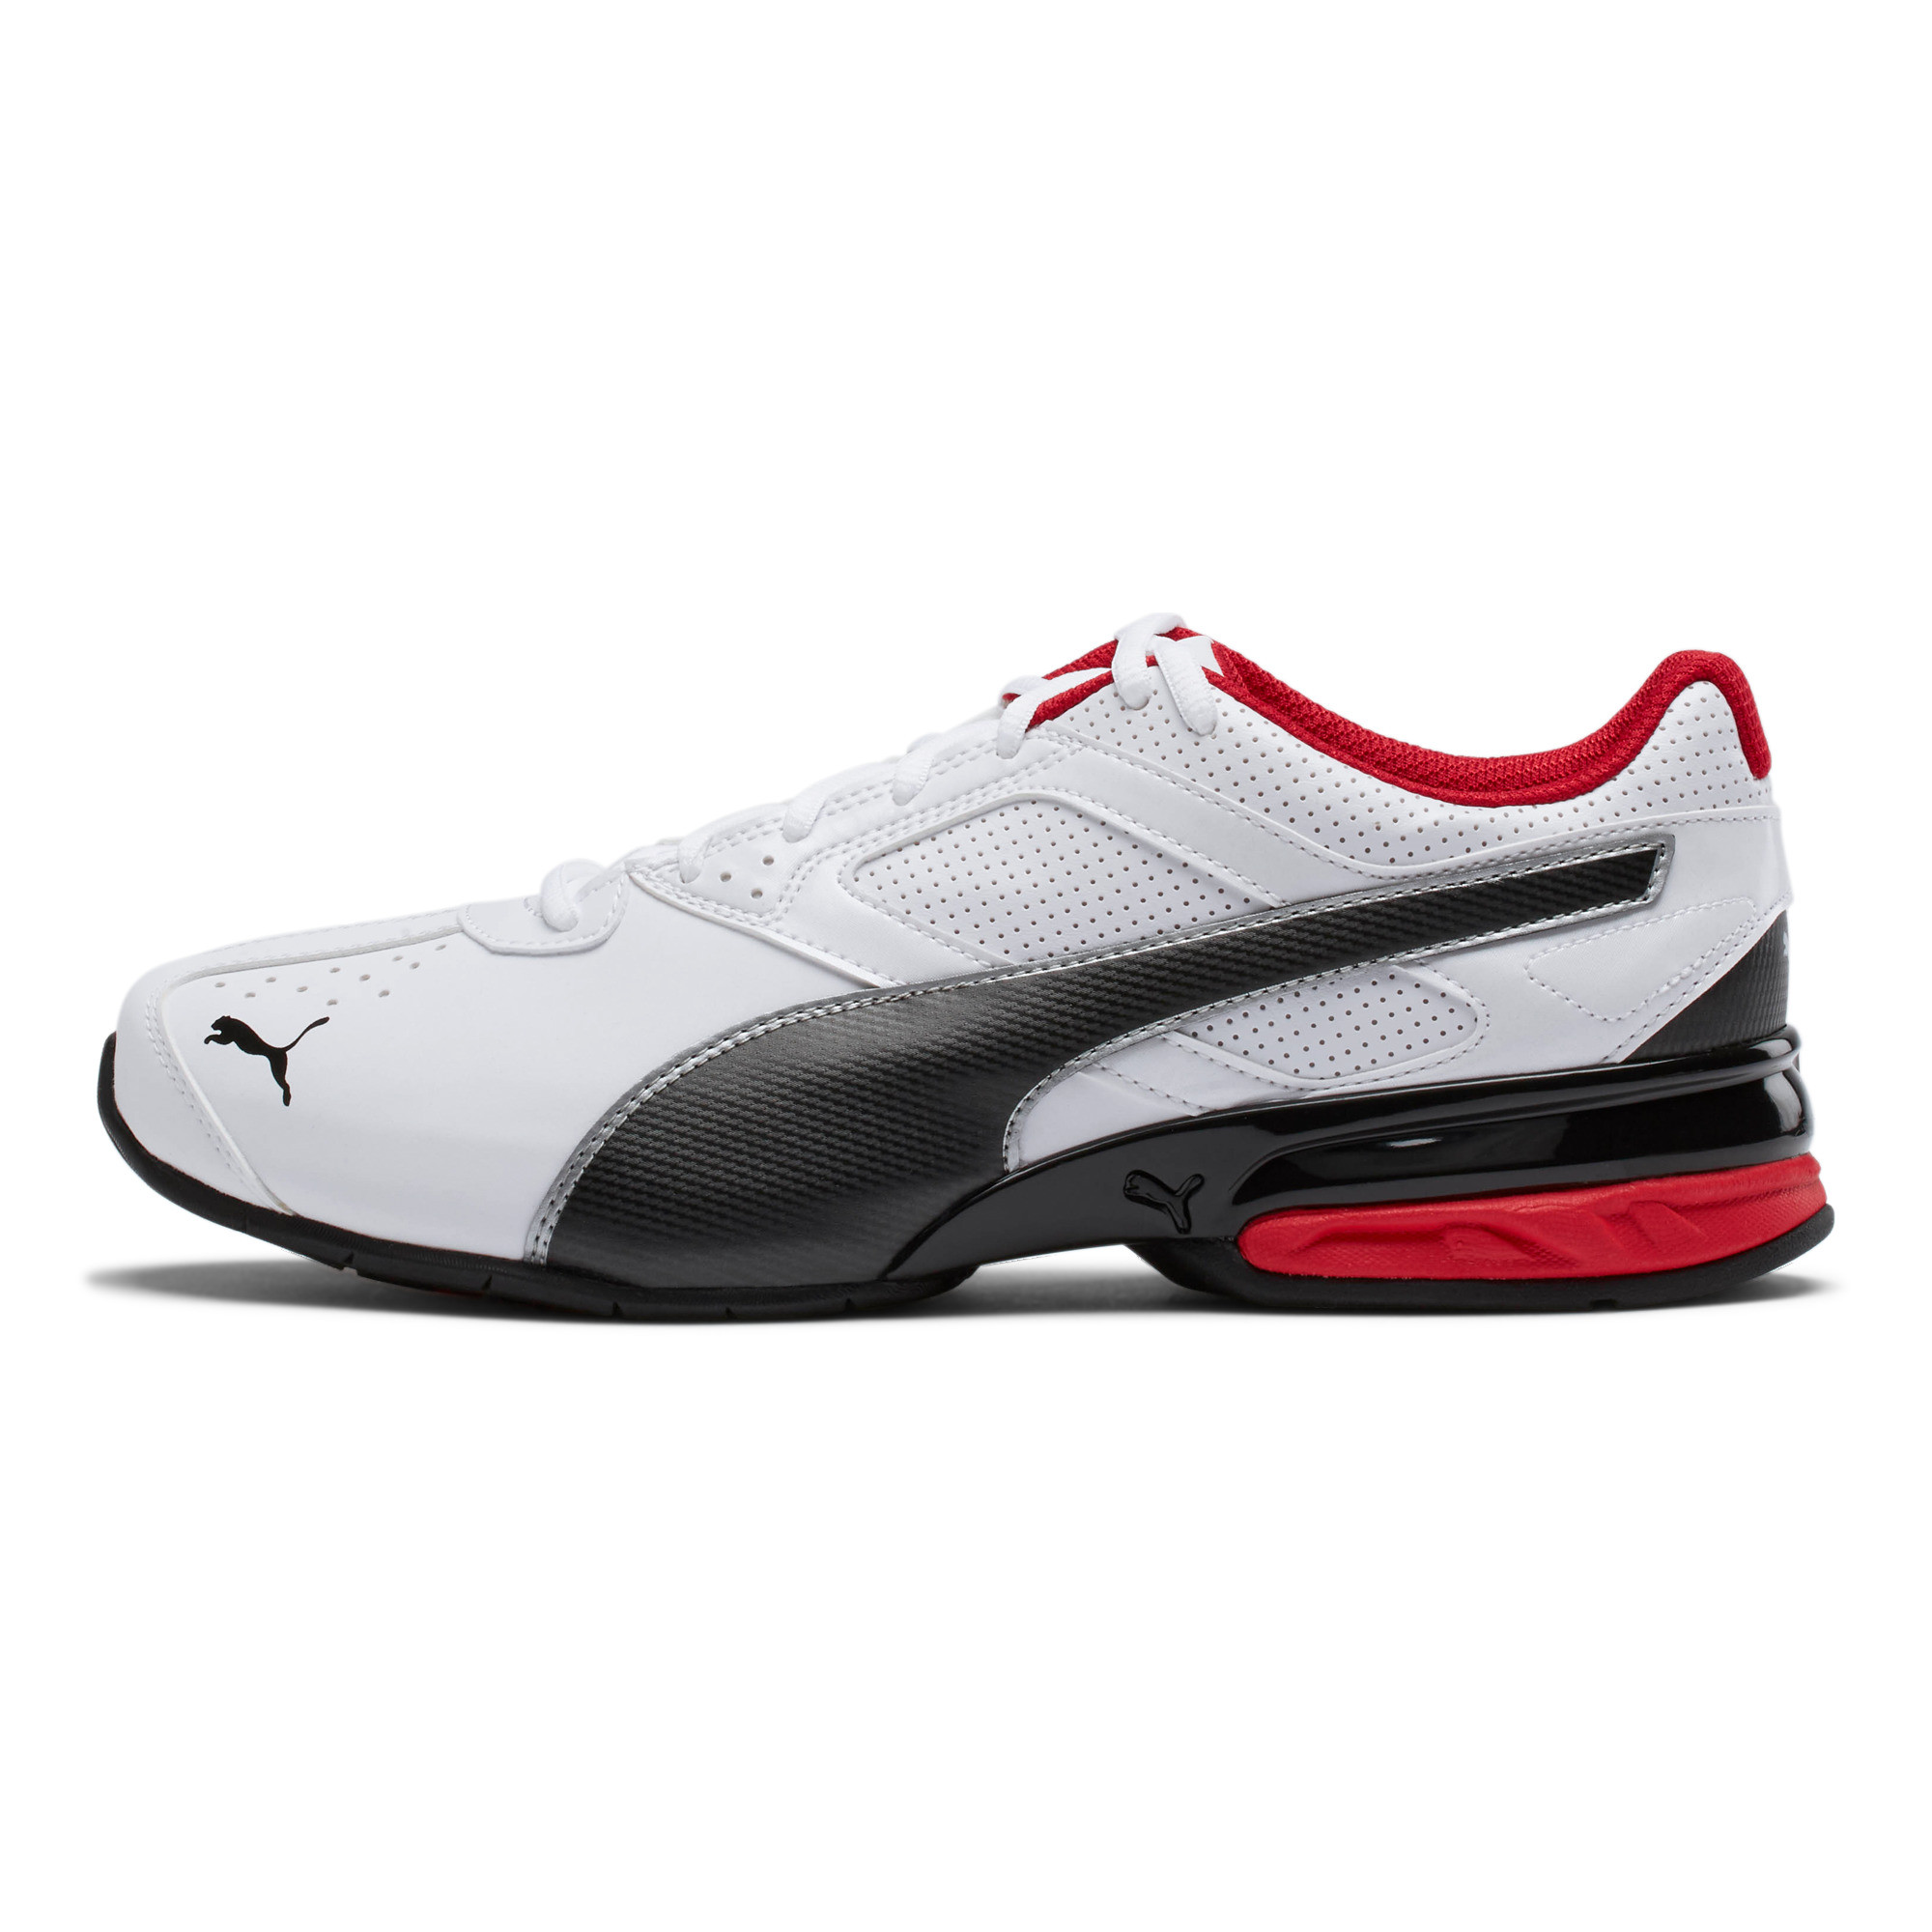 PUMA-Tazon-6-FM-Men-039-s-Sneakers-Men-Shoe-Running thumbnail 14